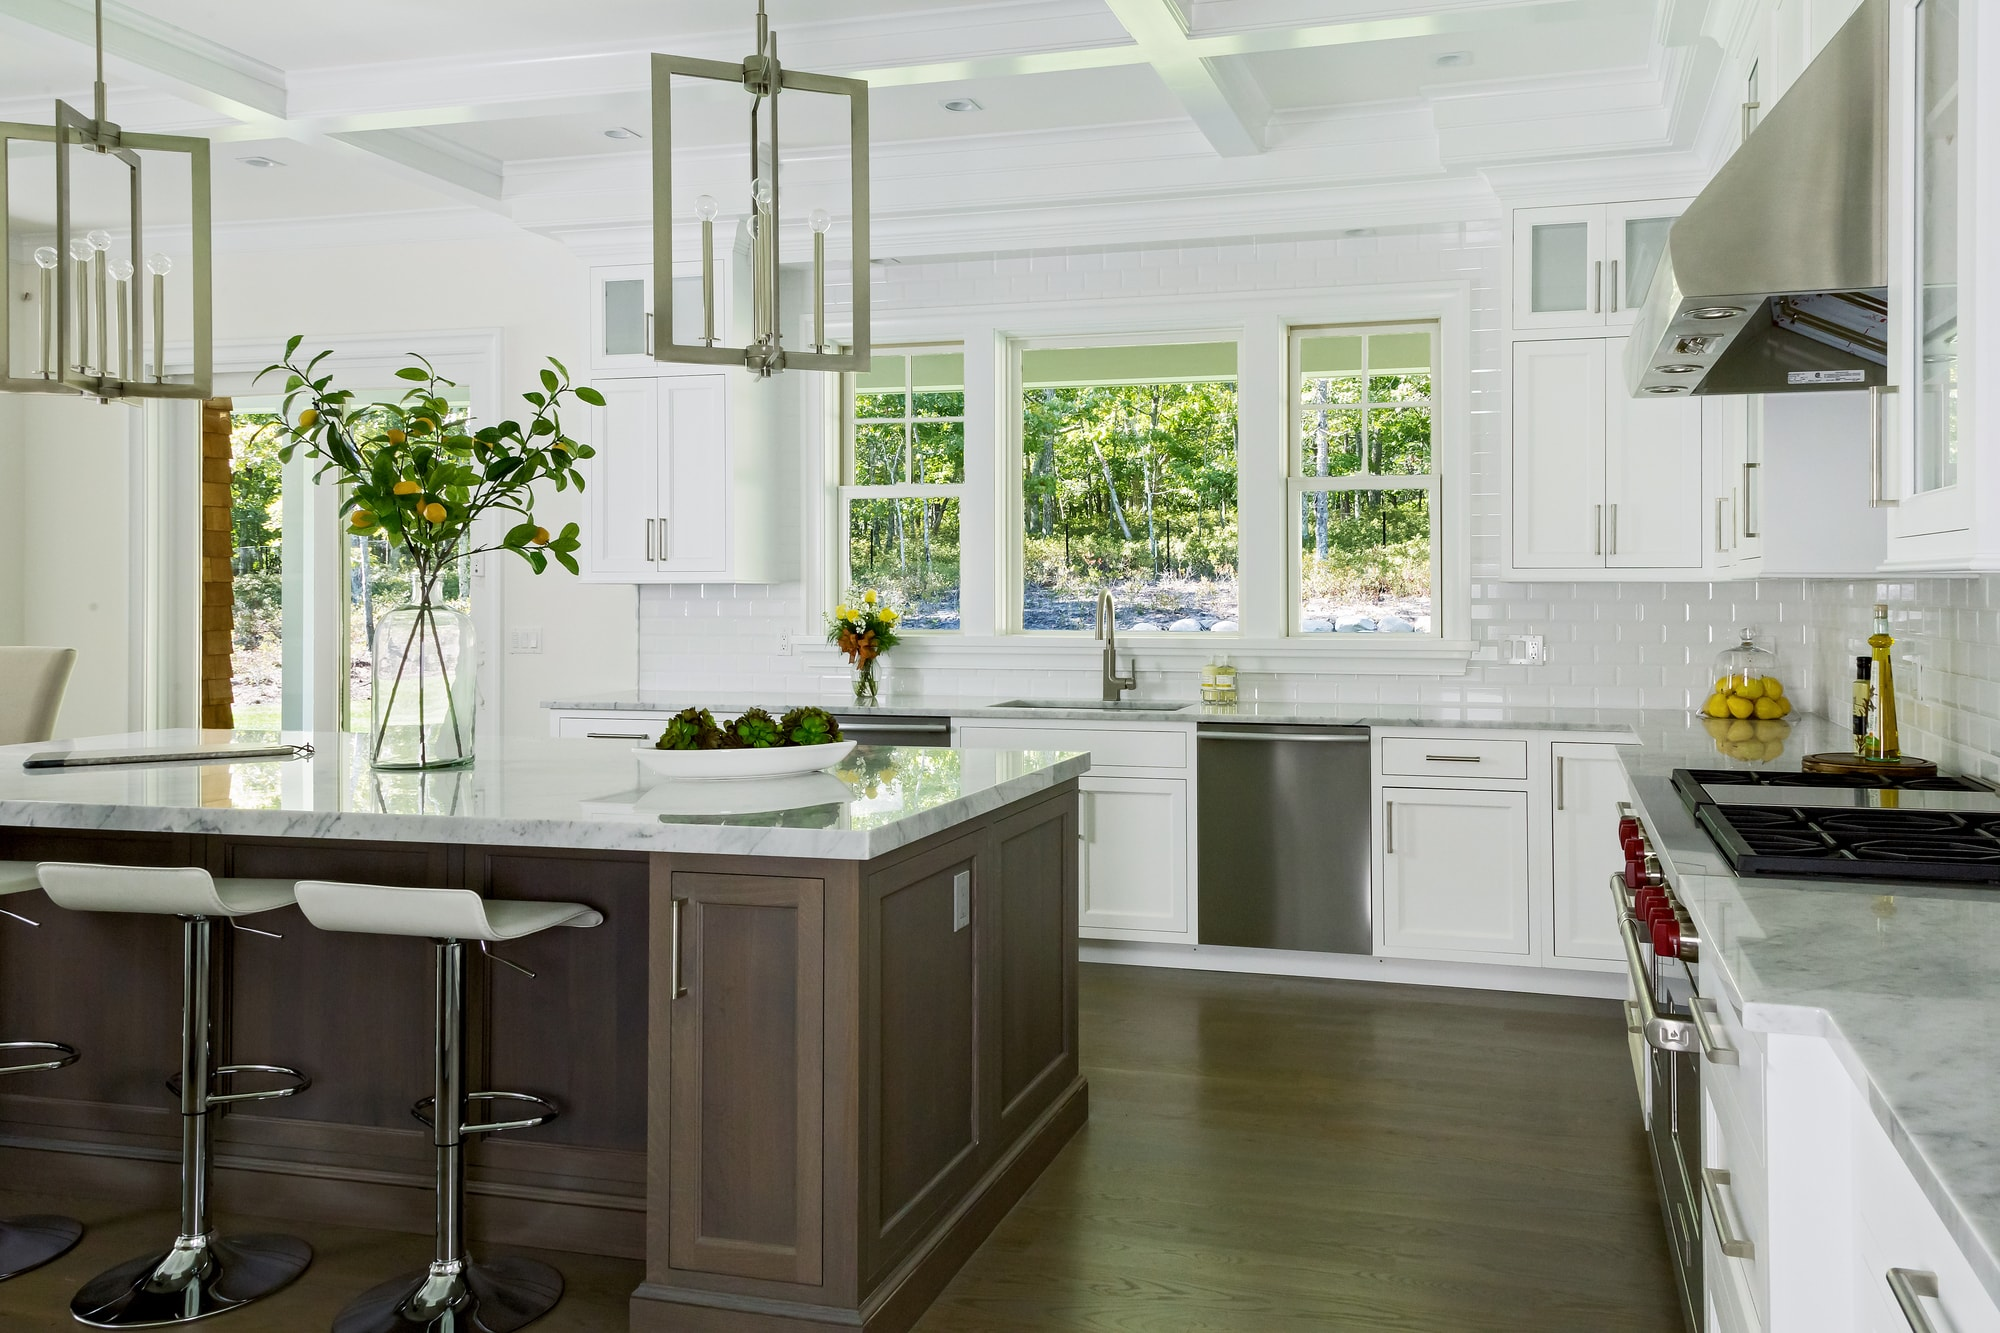 Copy of Transitional style kitchen with marble countertop